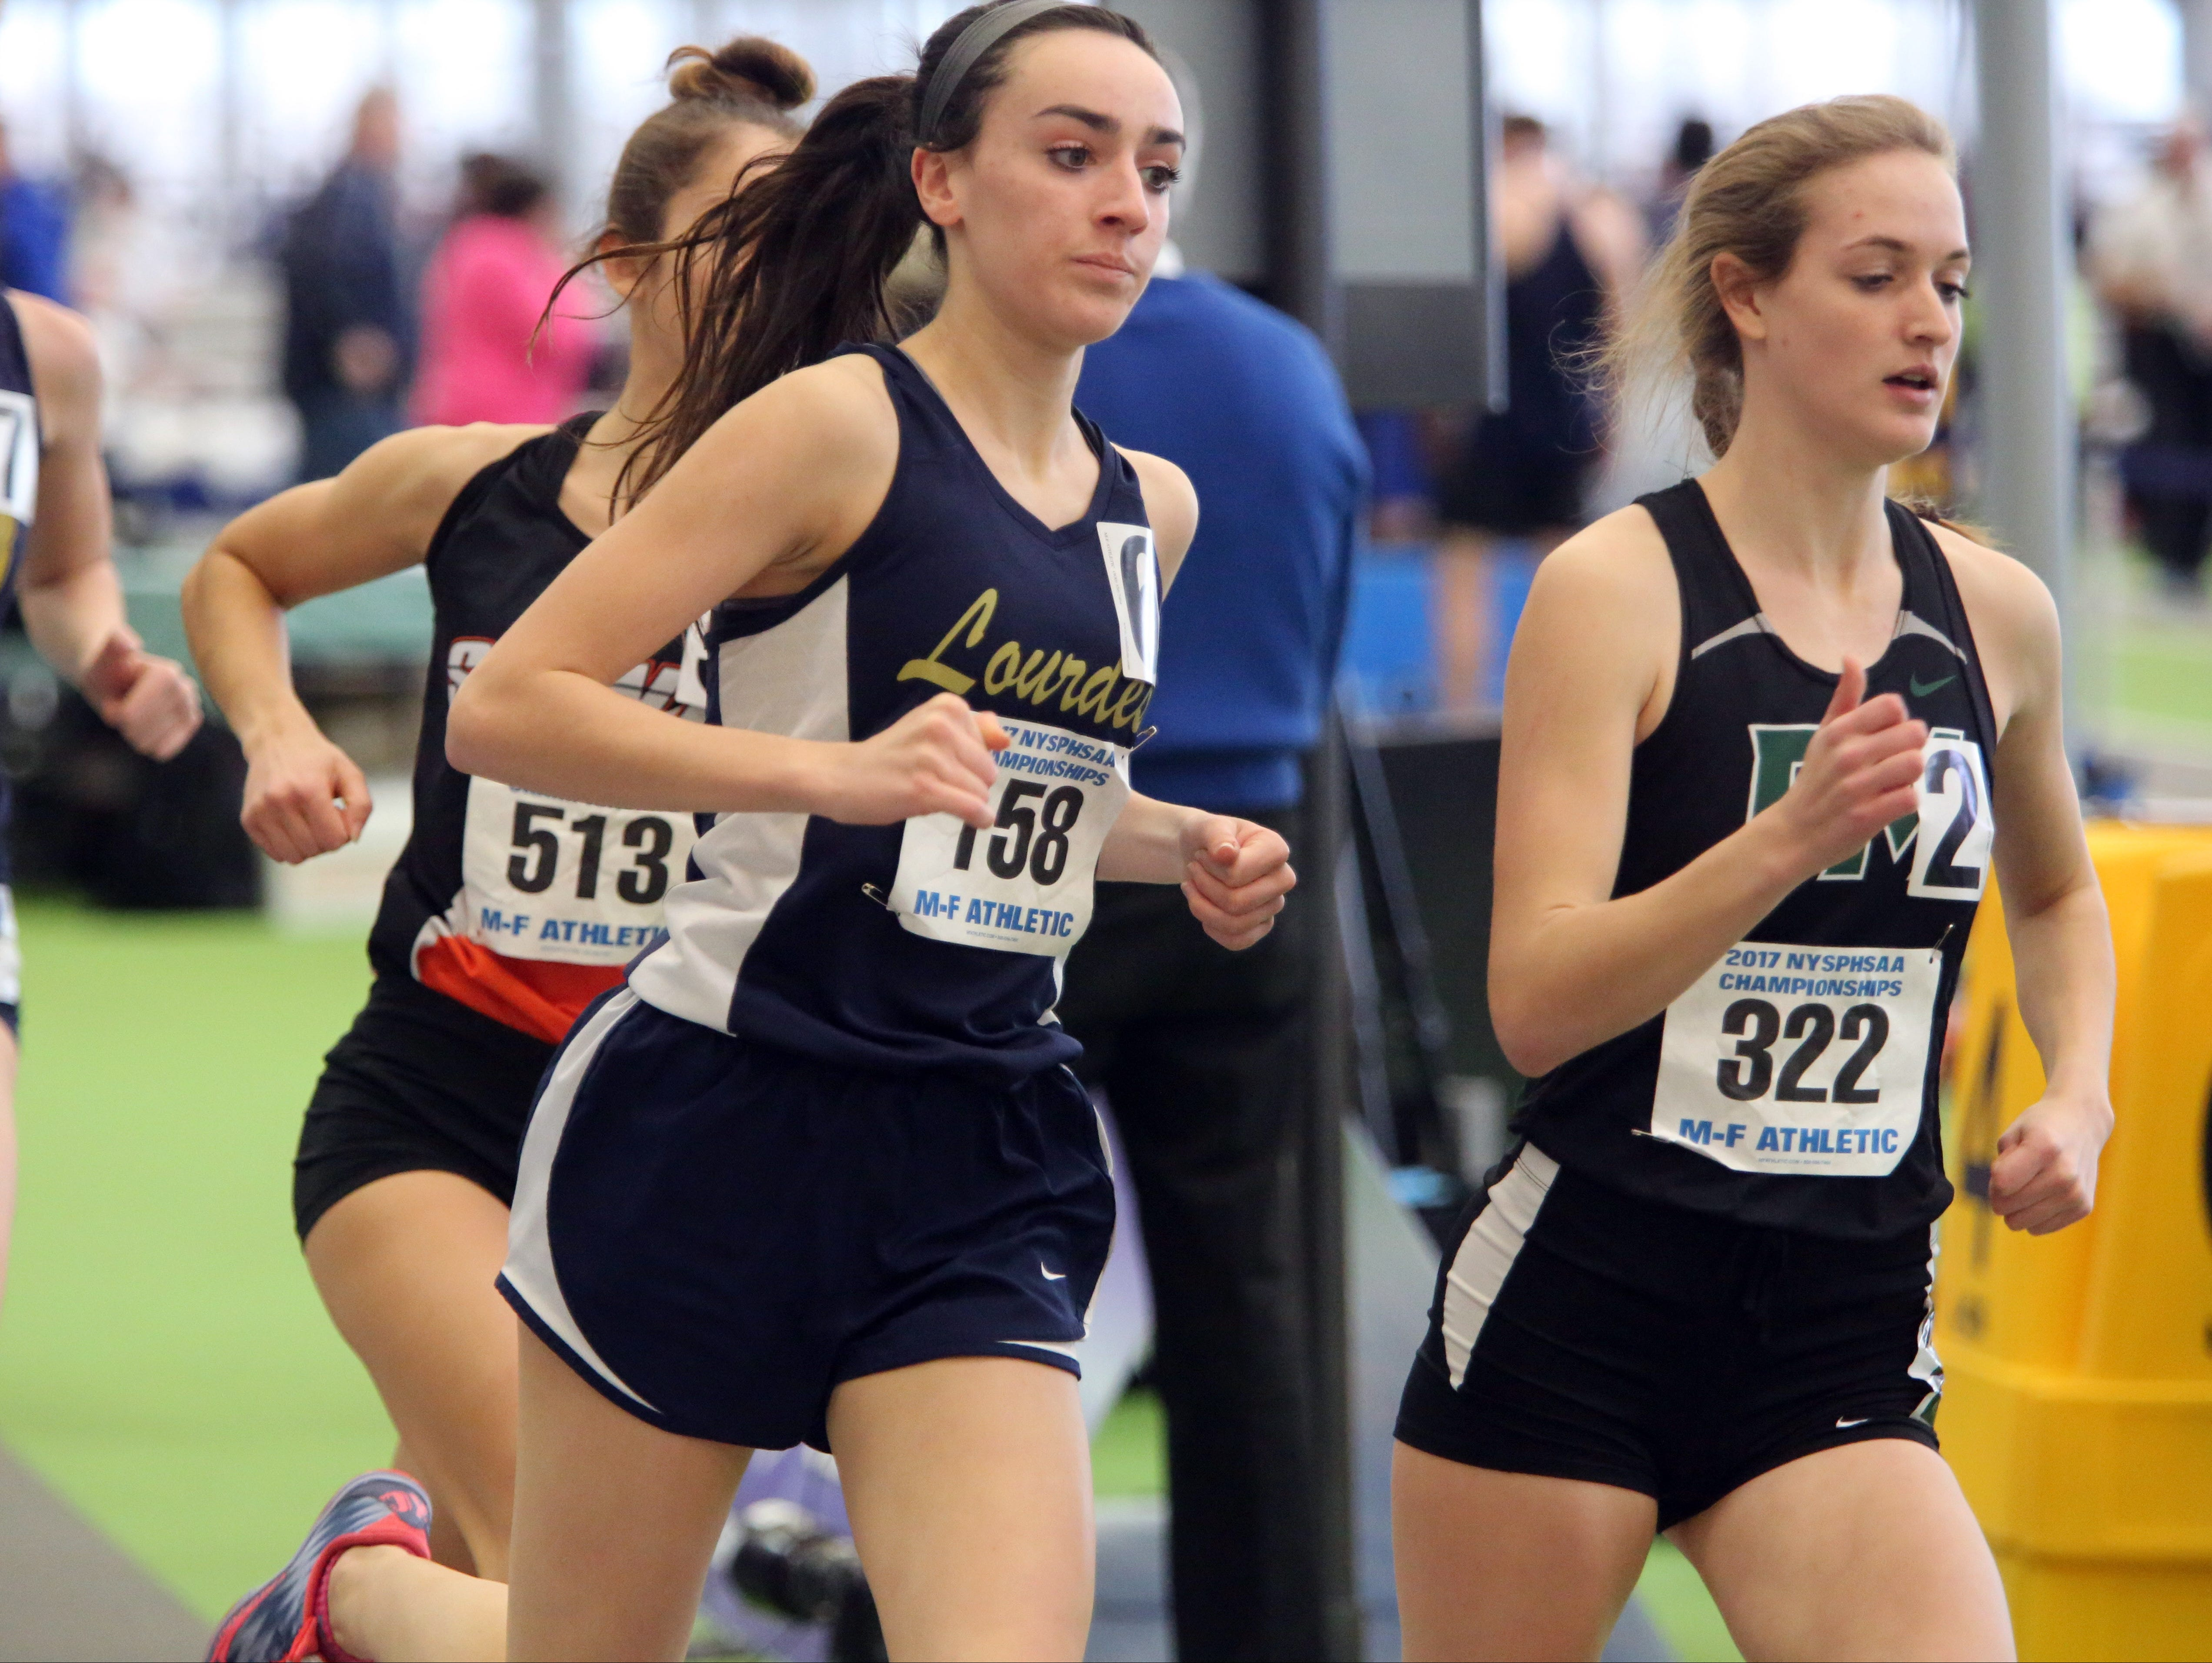 Caroline Timm from Lourdes competes in the girls 1,500 meter run during the NYSPHSAA Track and Field championships at the Ocean Breeze Athletic Complex in Staten Island, March 4, 2017.